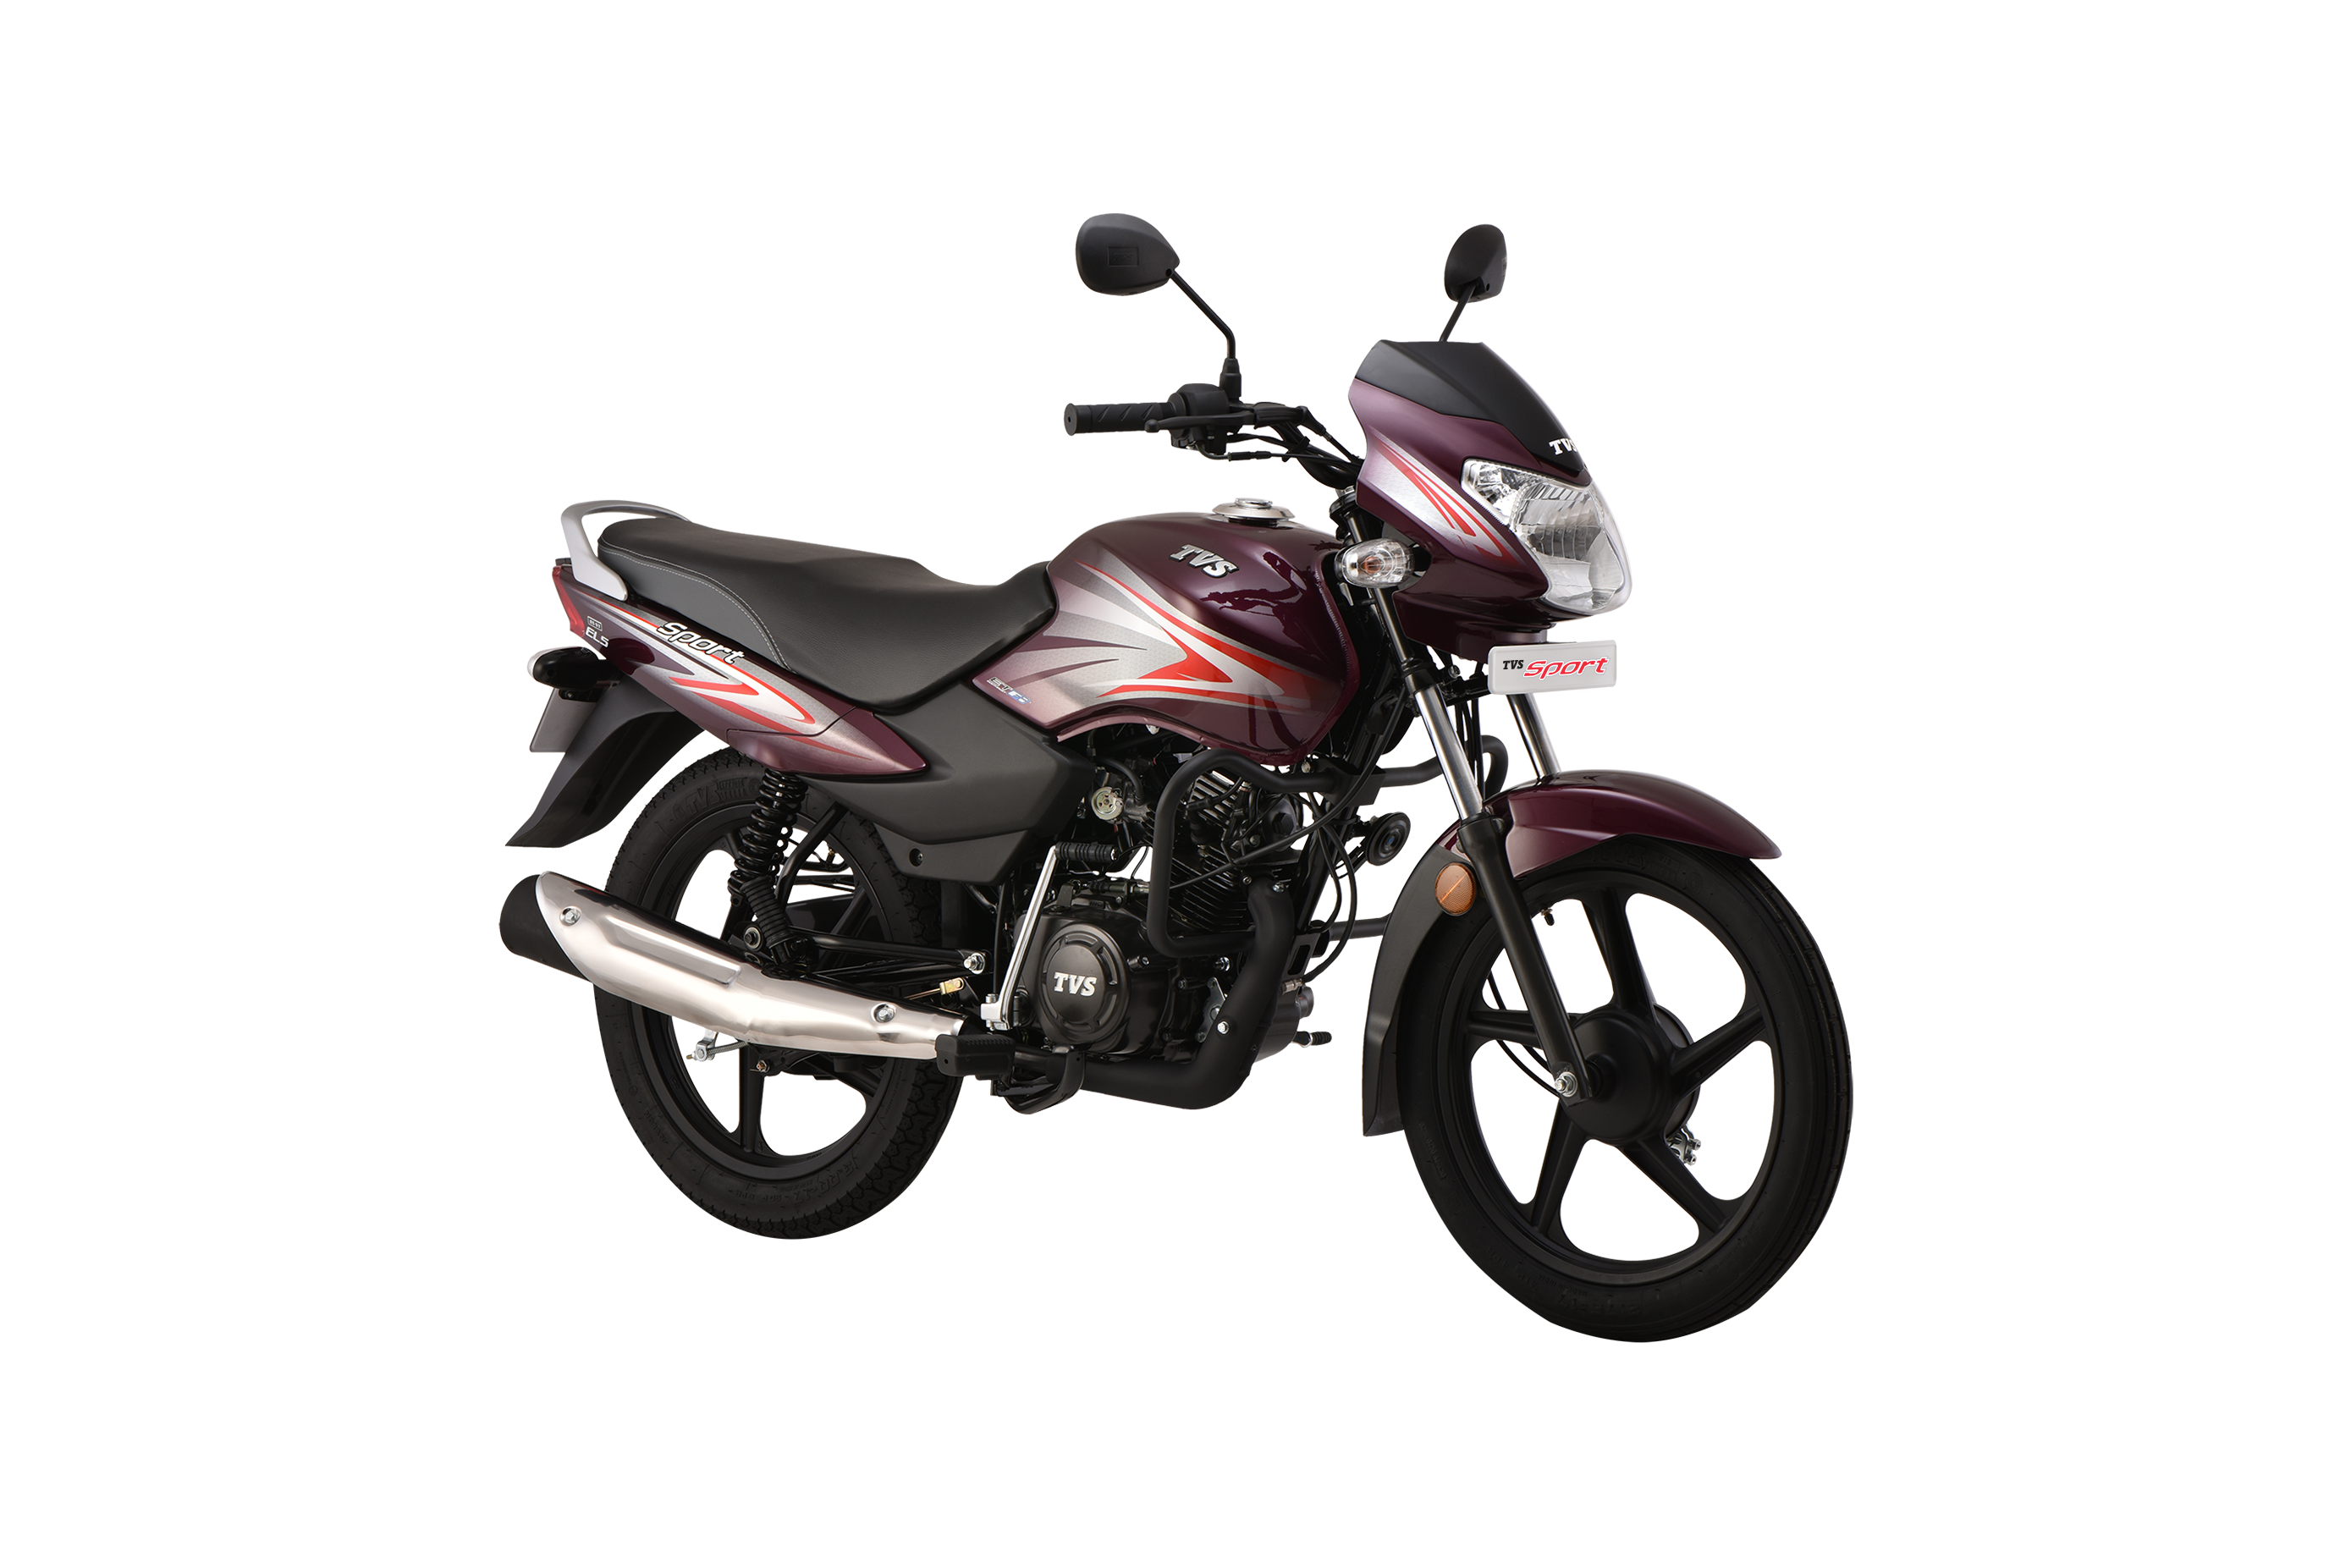 TVS Sport BS6 Sets Record For On-Road Fuel Efficiency